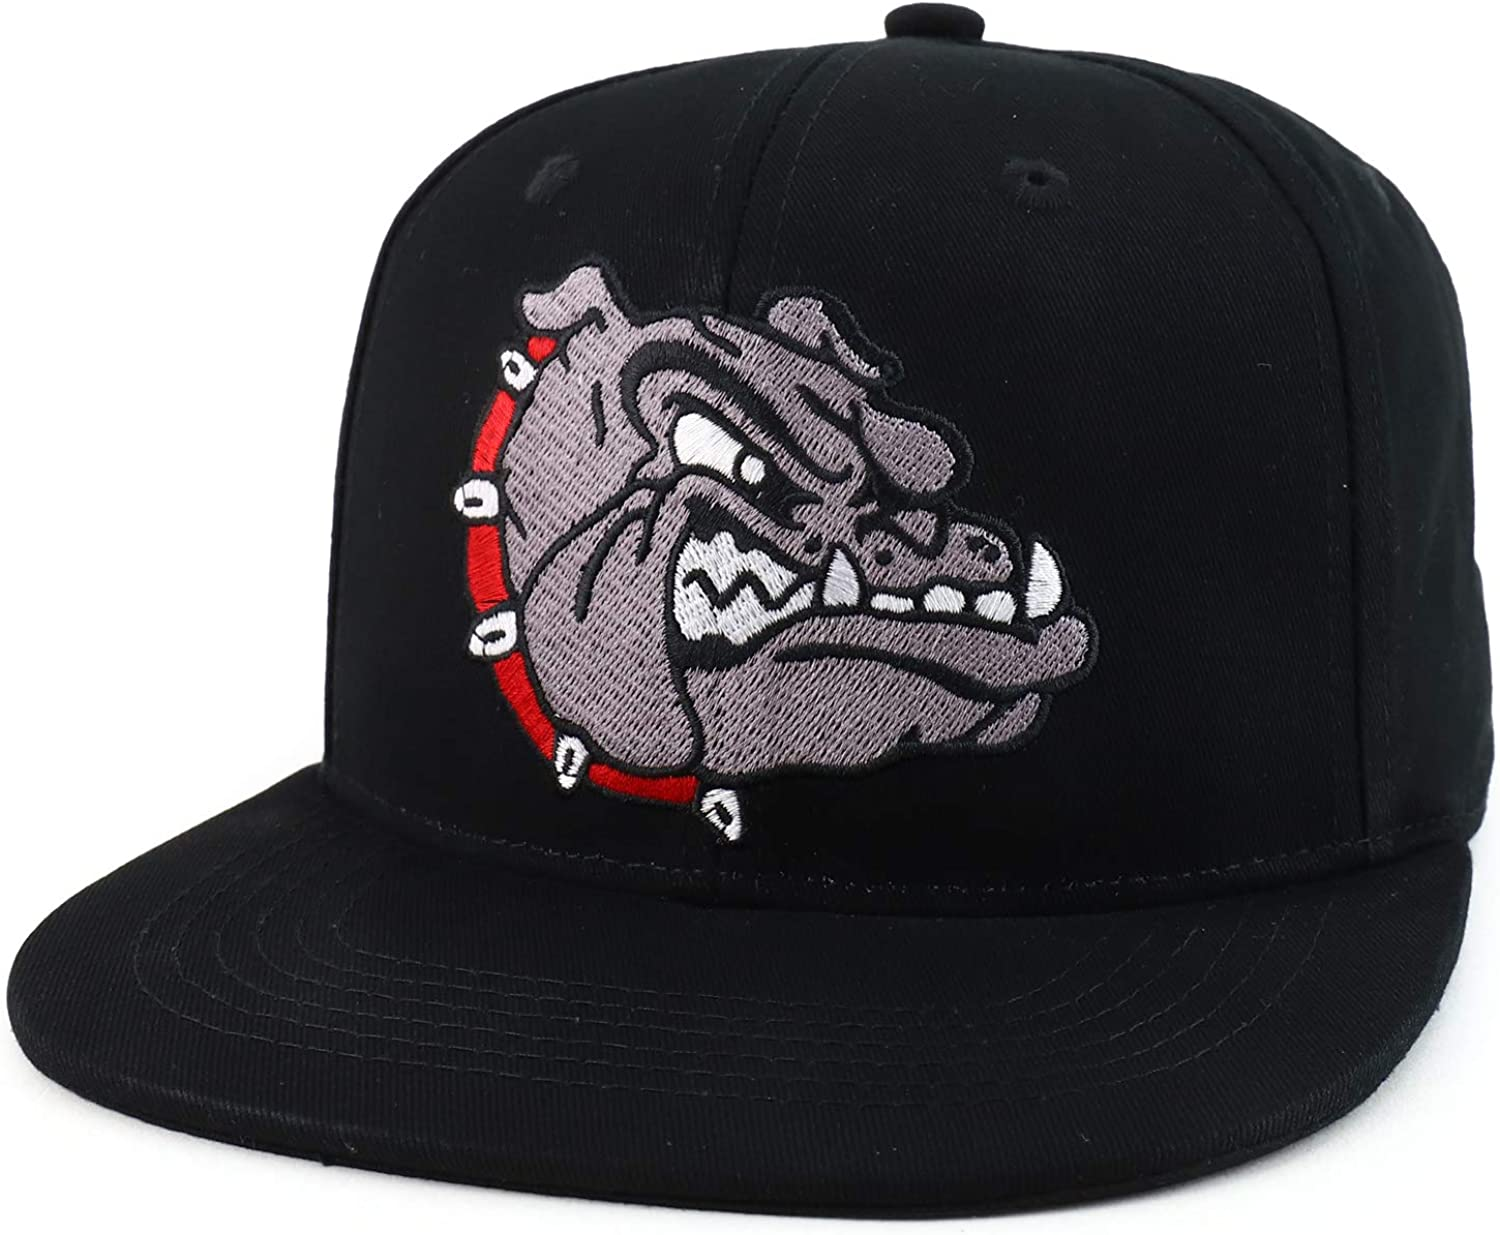 Trendy Apparel Shop Cheap bargain Super sale period limited Angry Bulldog Flatbill Head Snap Embroidered